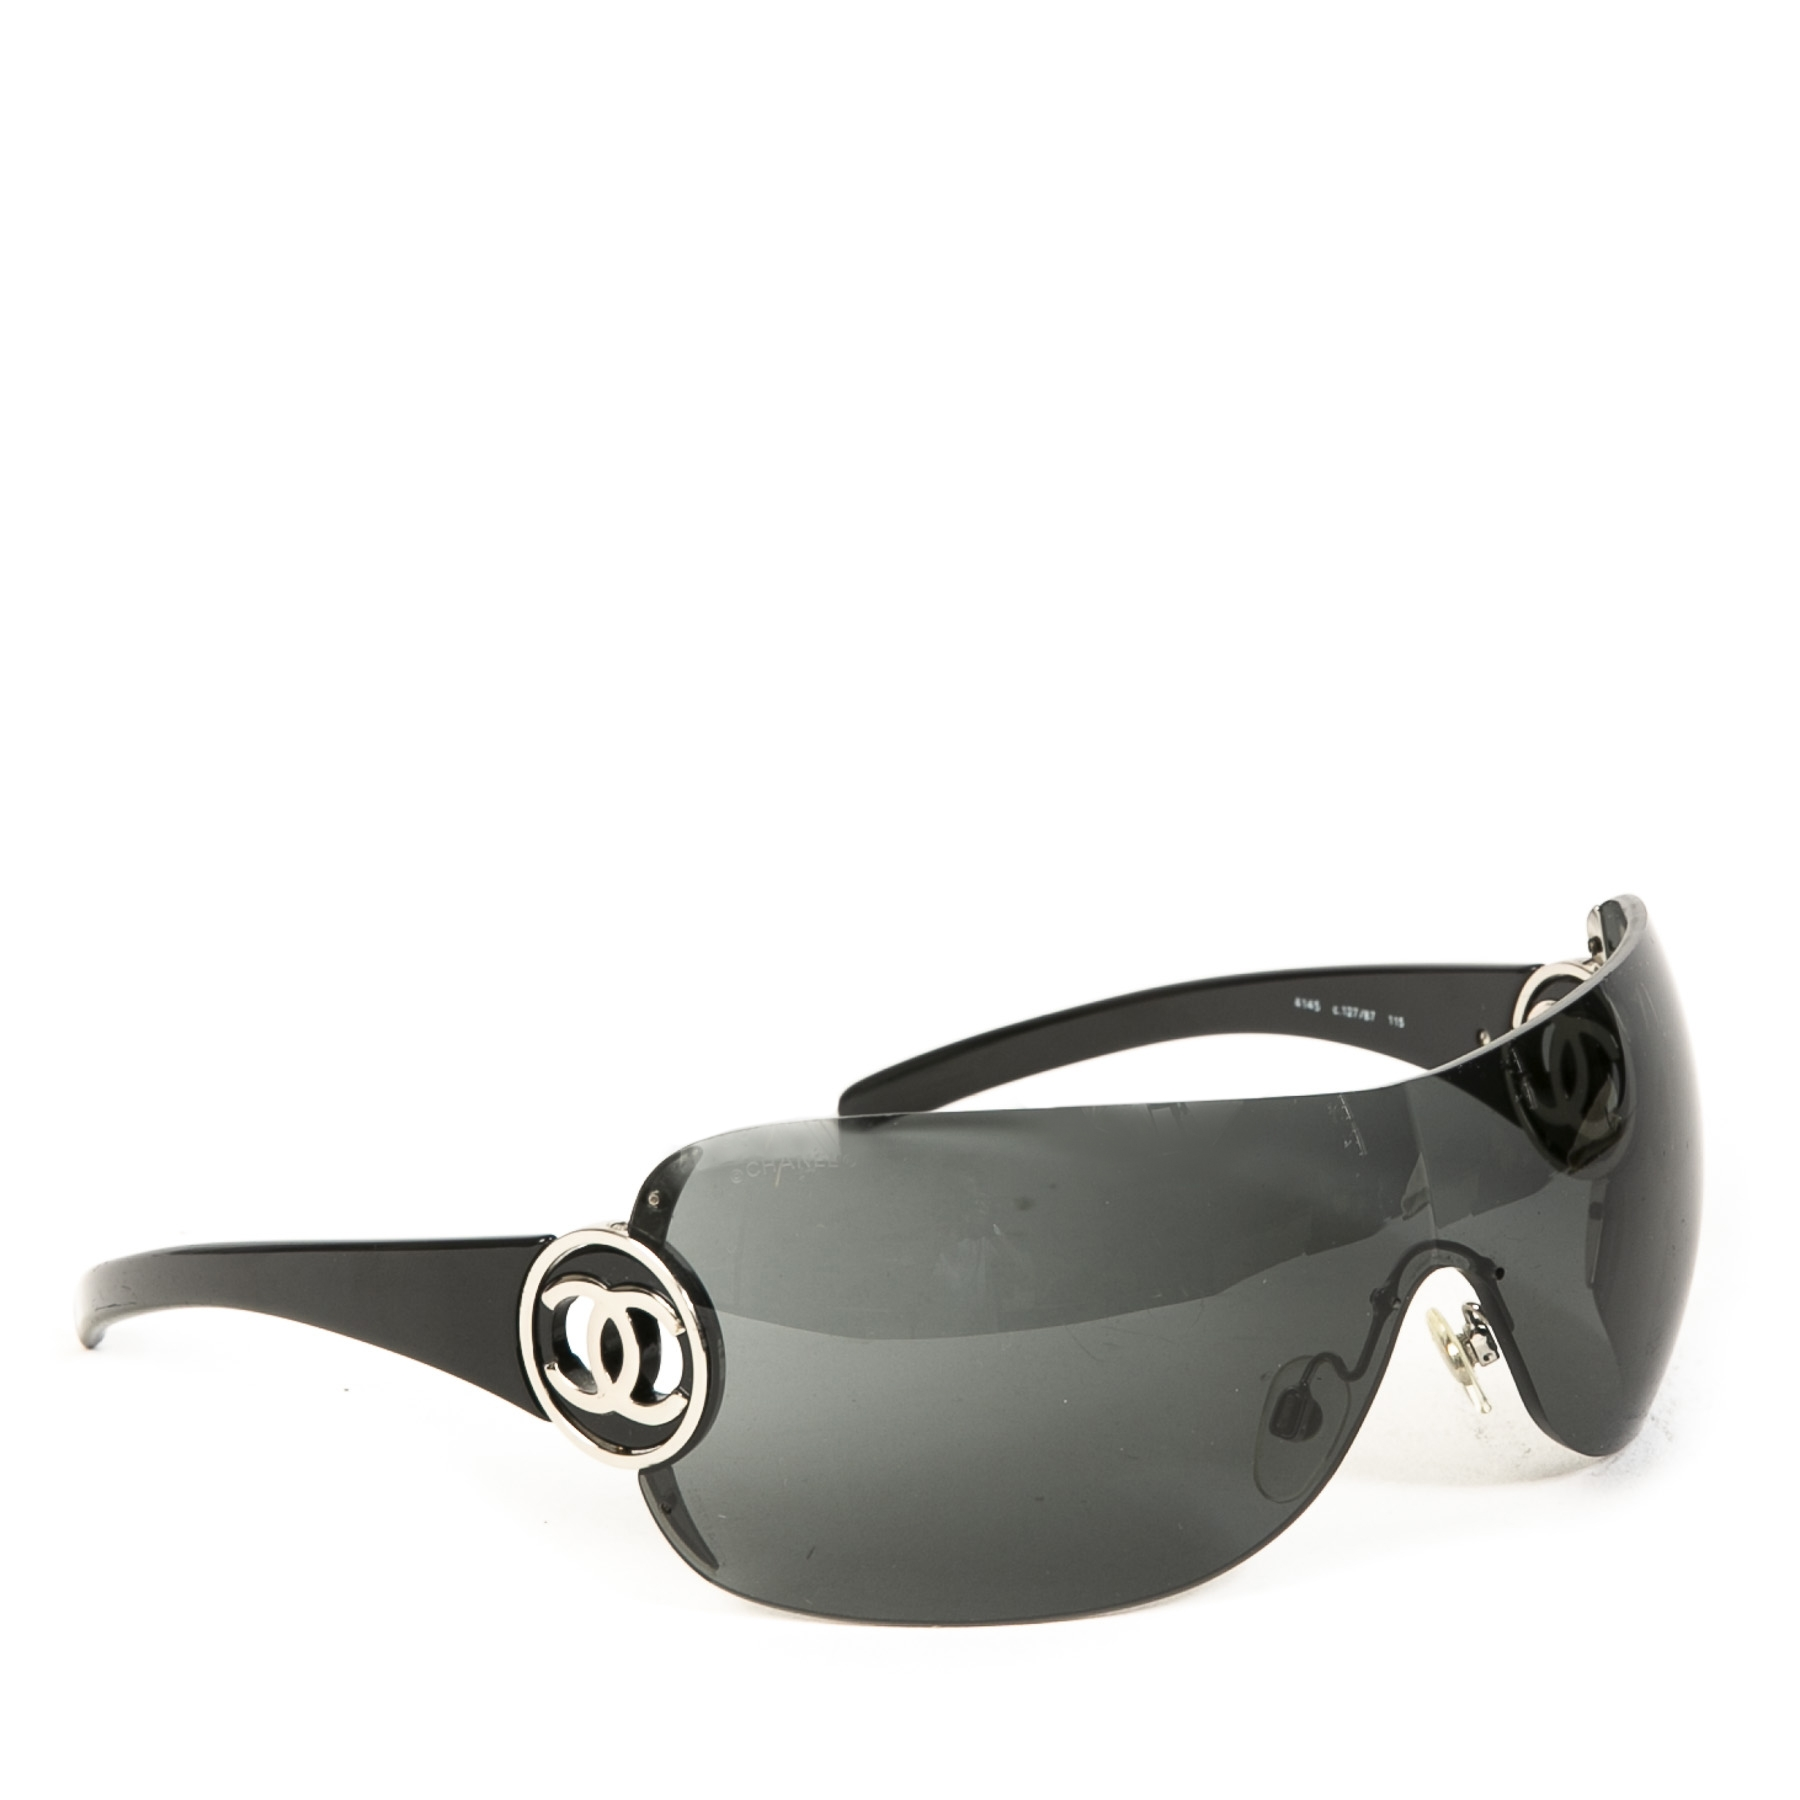 Authentic second-hand vintage Chanel CC Shield Sunglasses buy online webshop LabelLOV